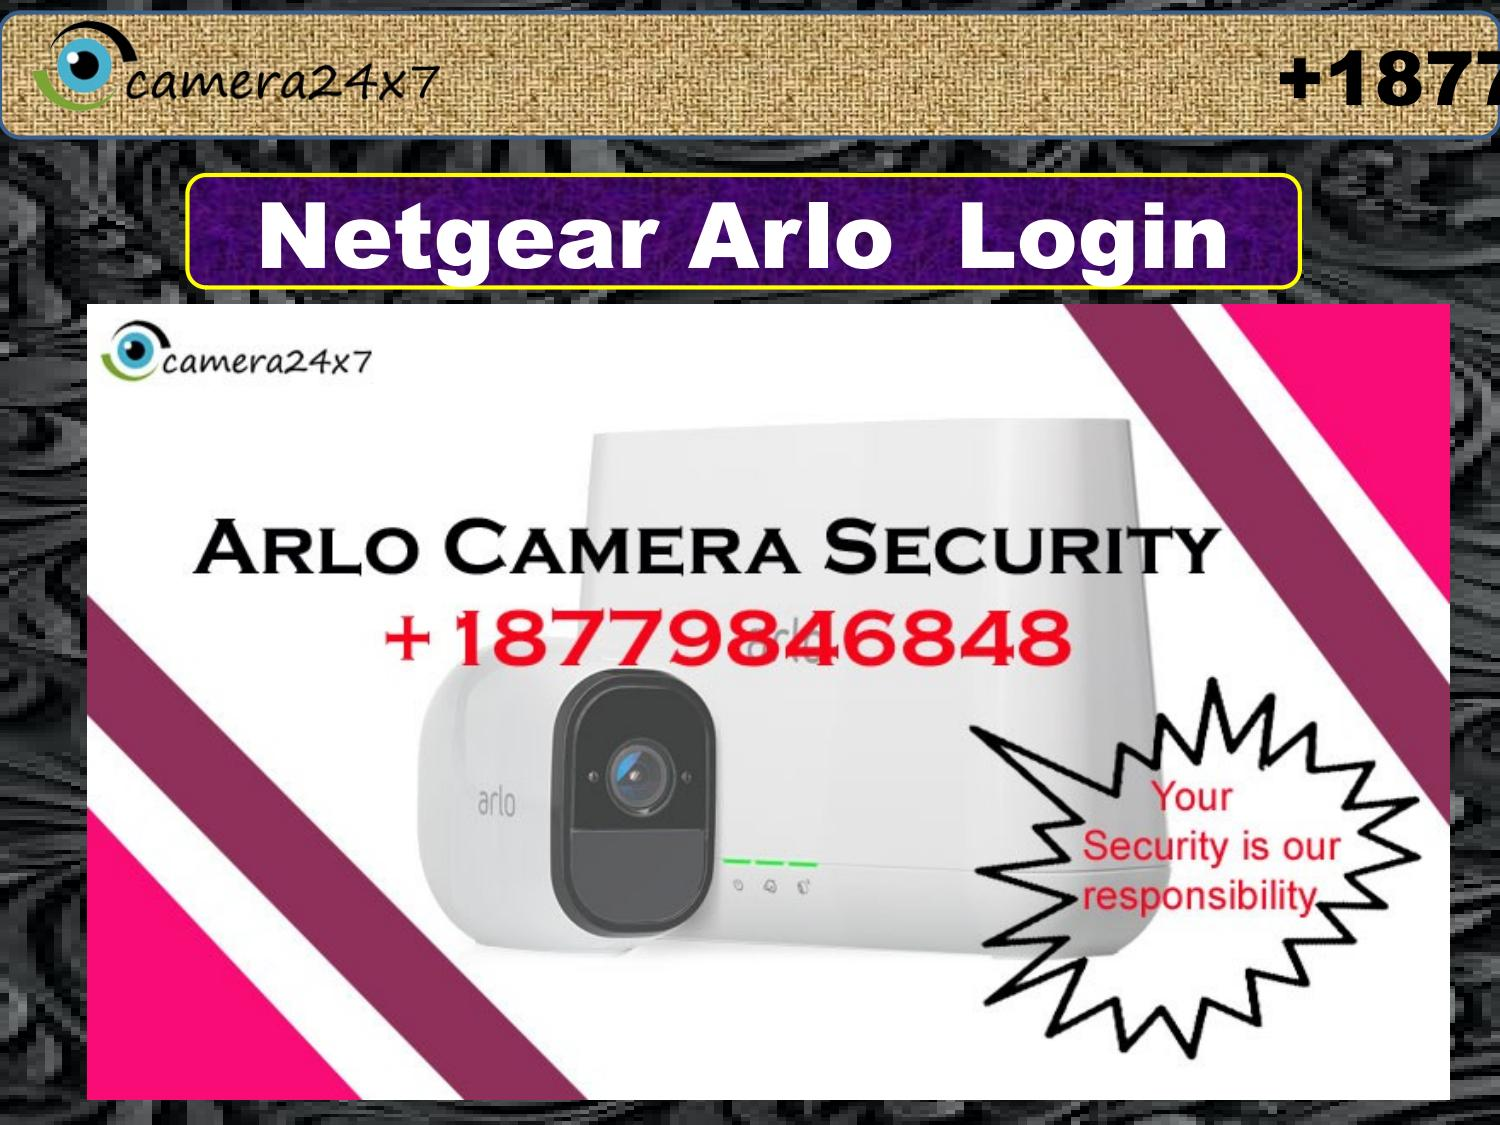 Contact Us 18779846848 Arlo Camera Support |Arlo Support Number| by